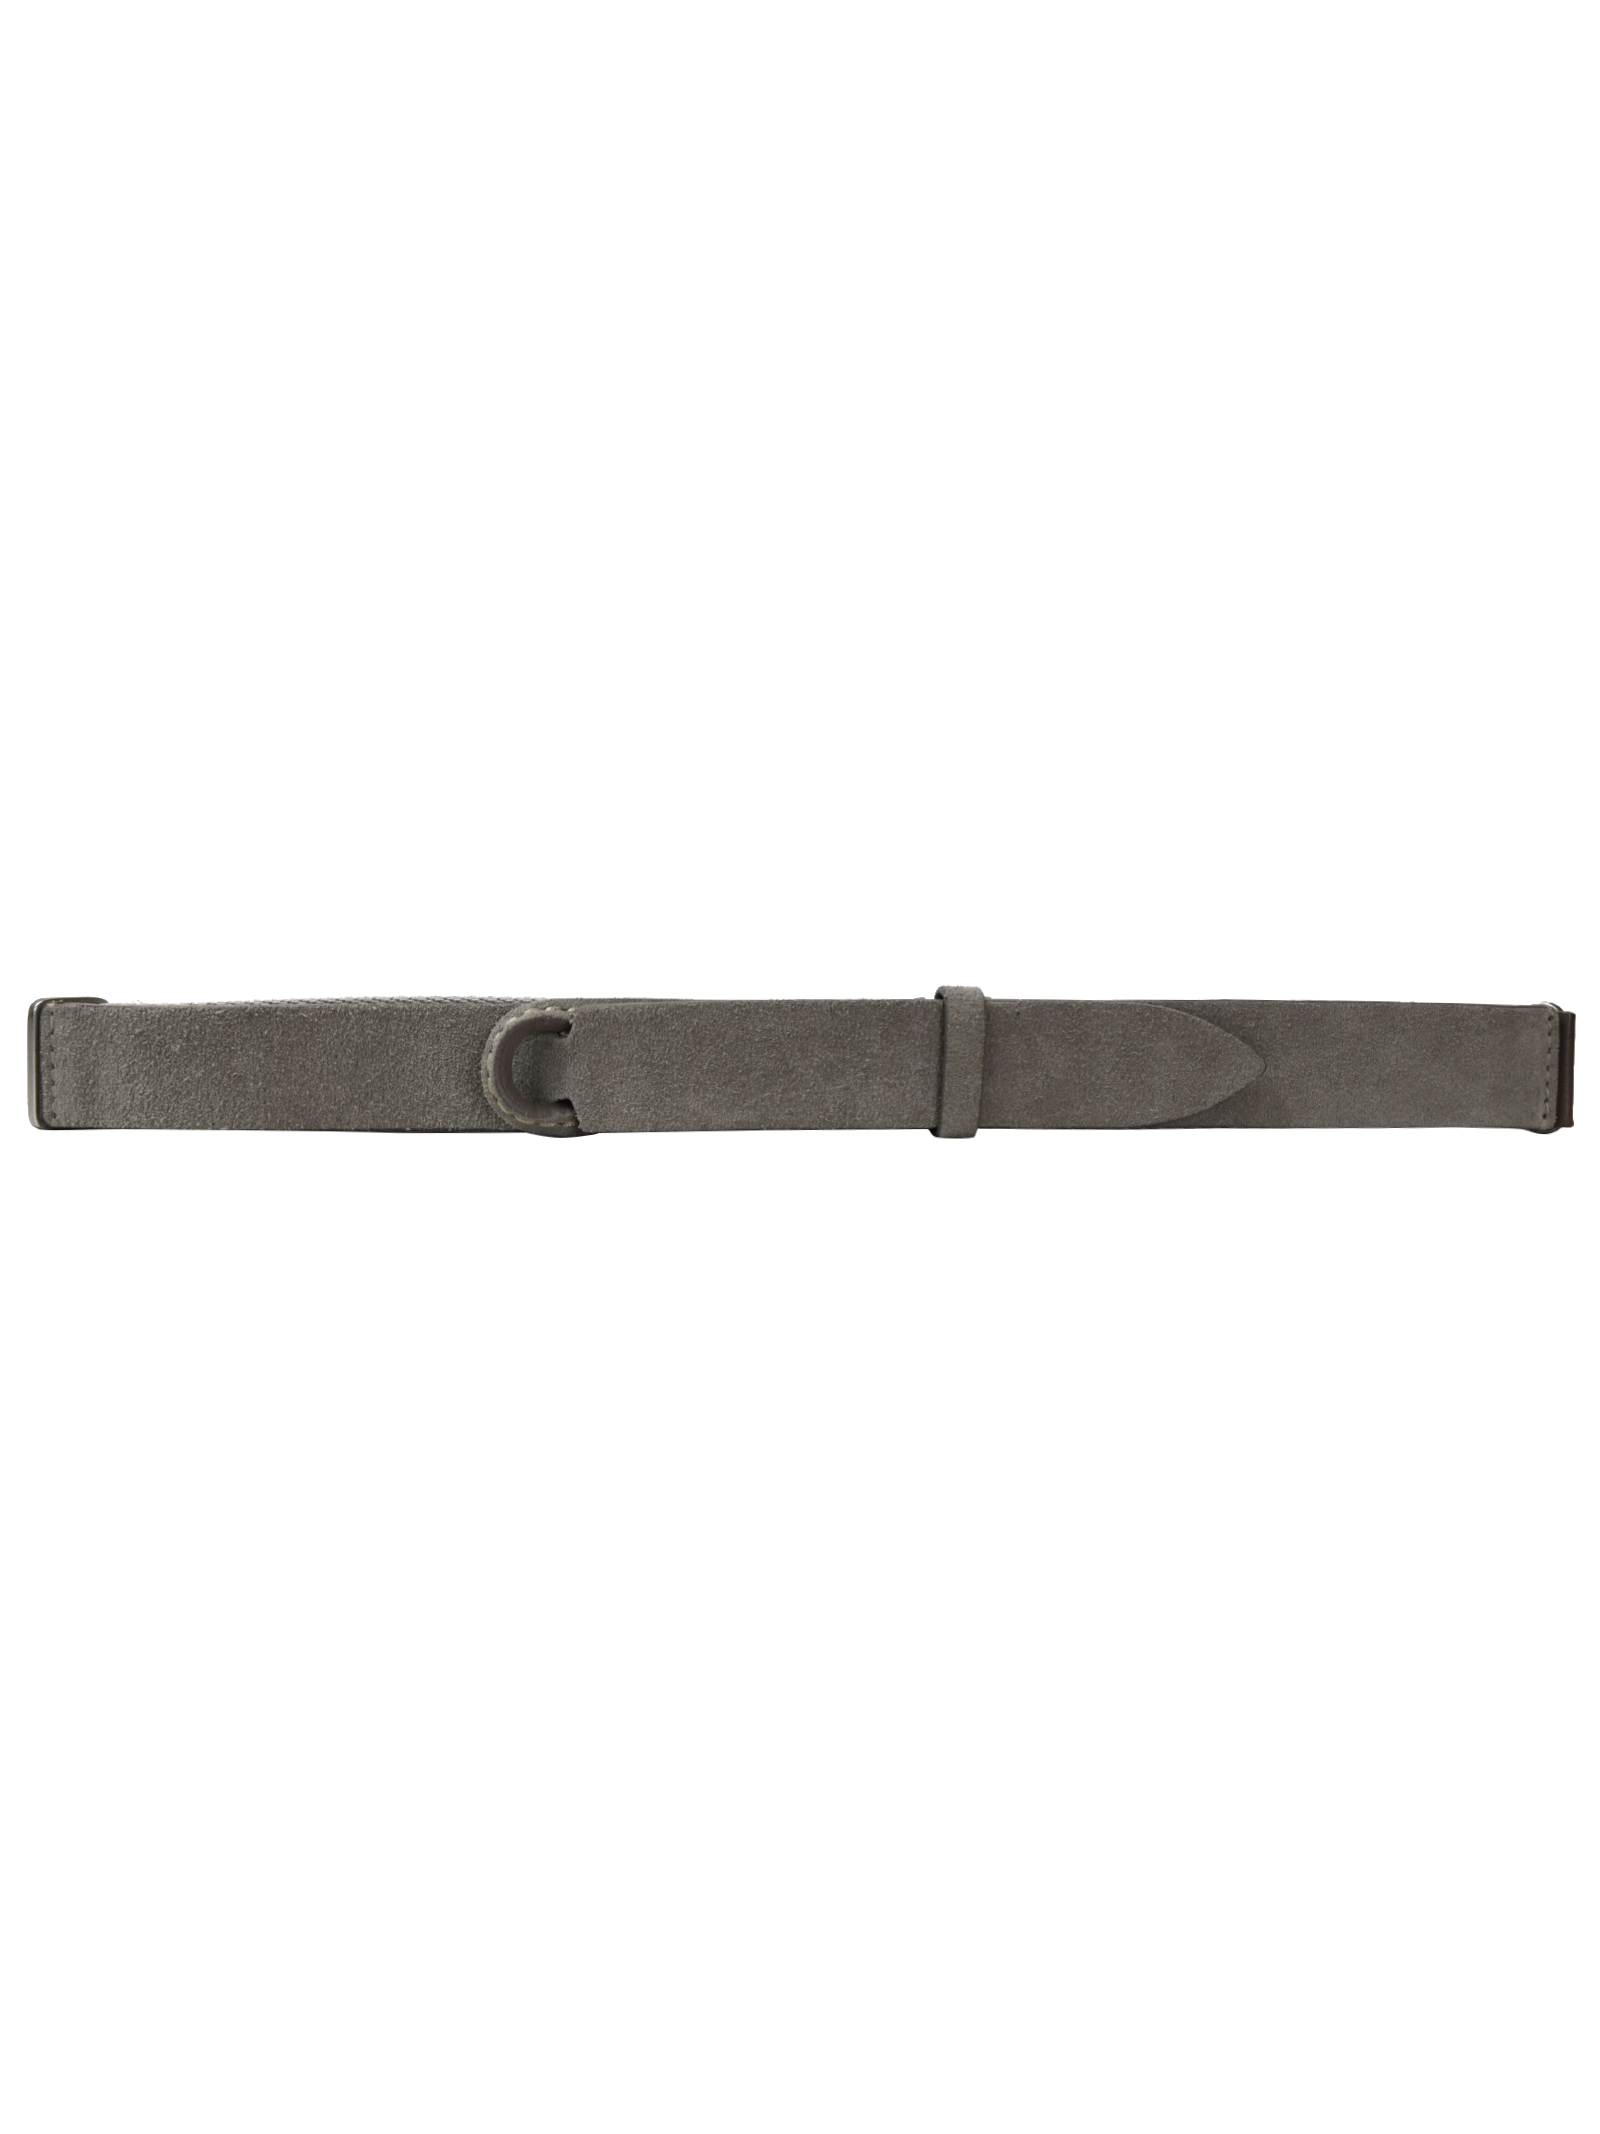 NO BUCKLE by Orciani |  | 02TAUPE